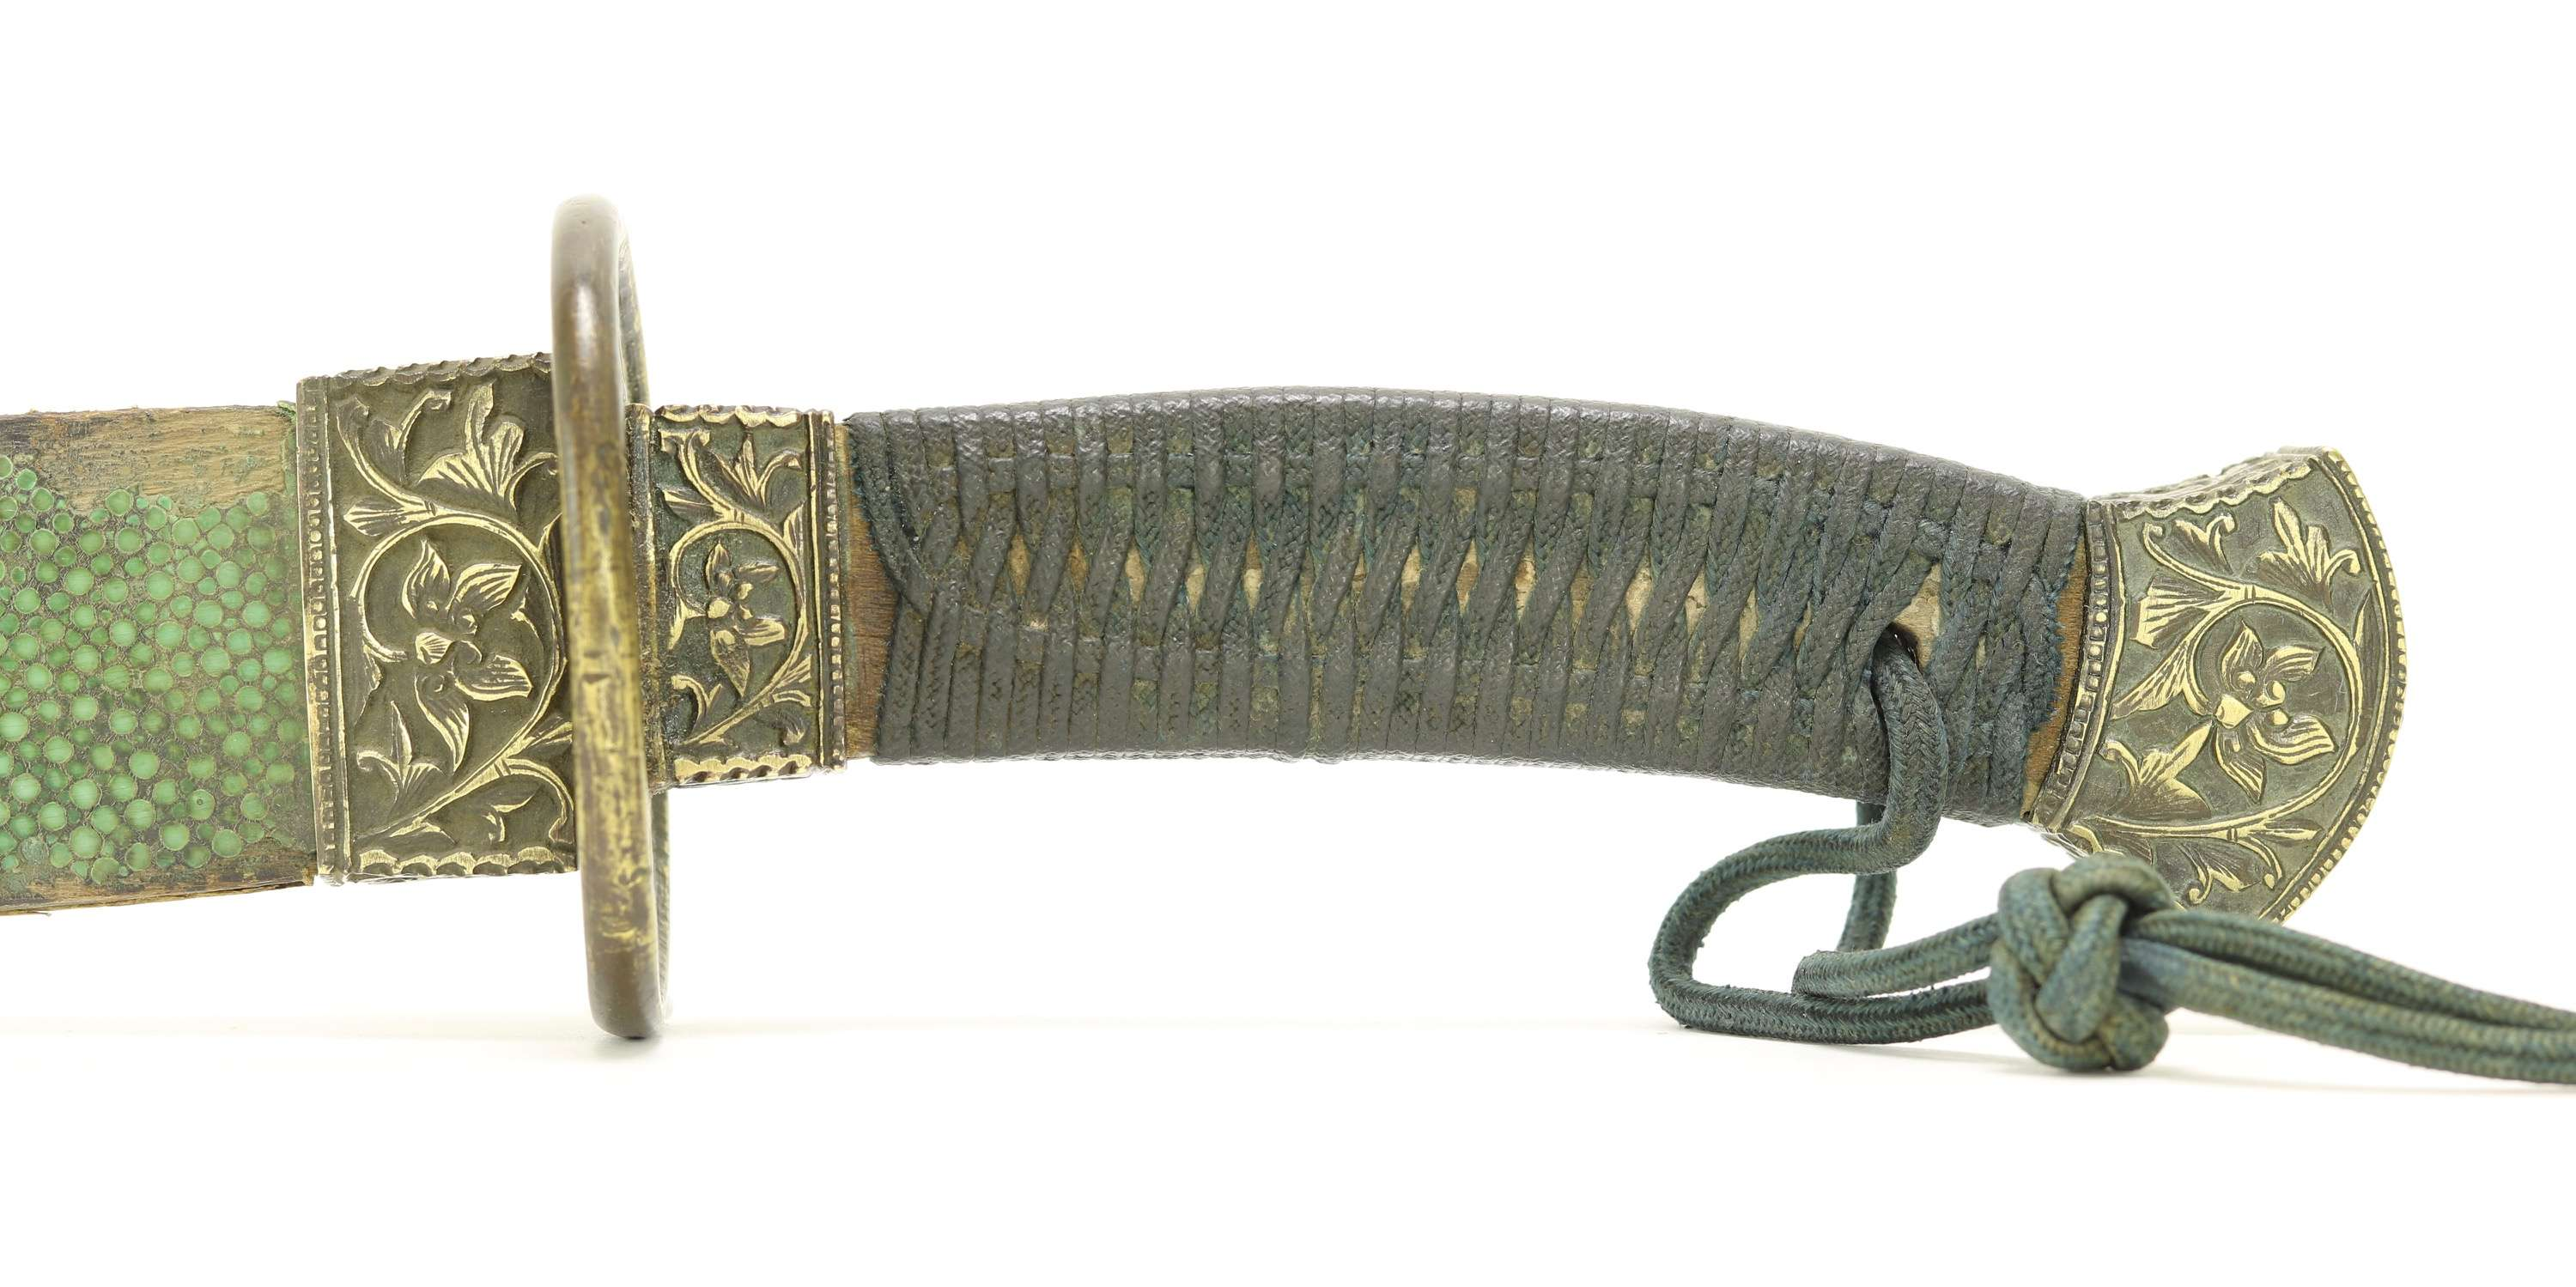 Antique Chinese officer saber in the angular style